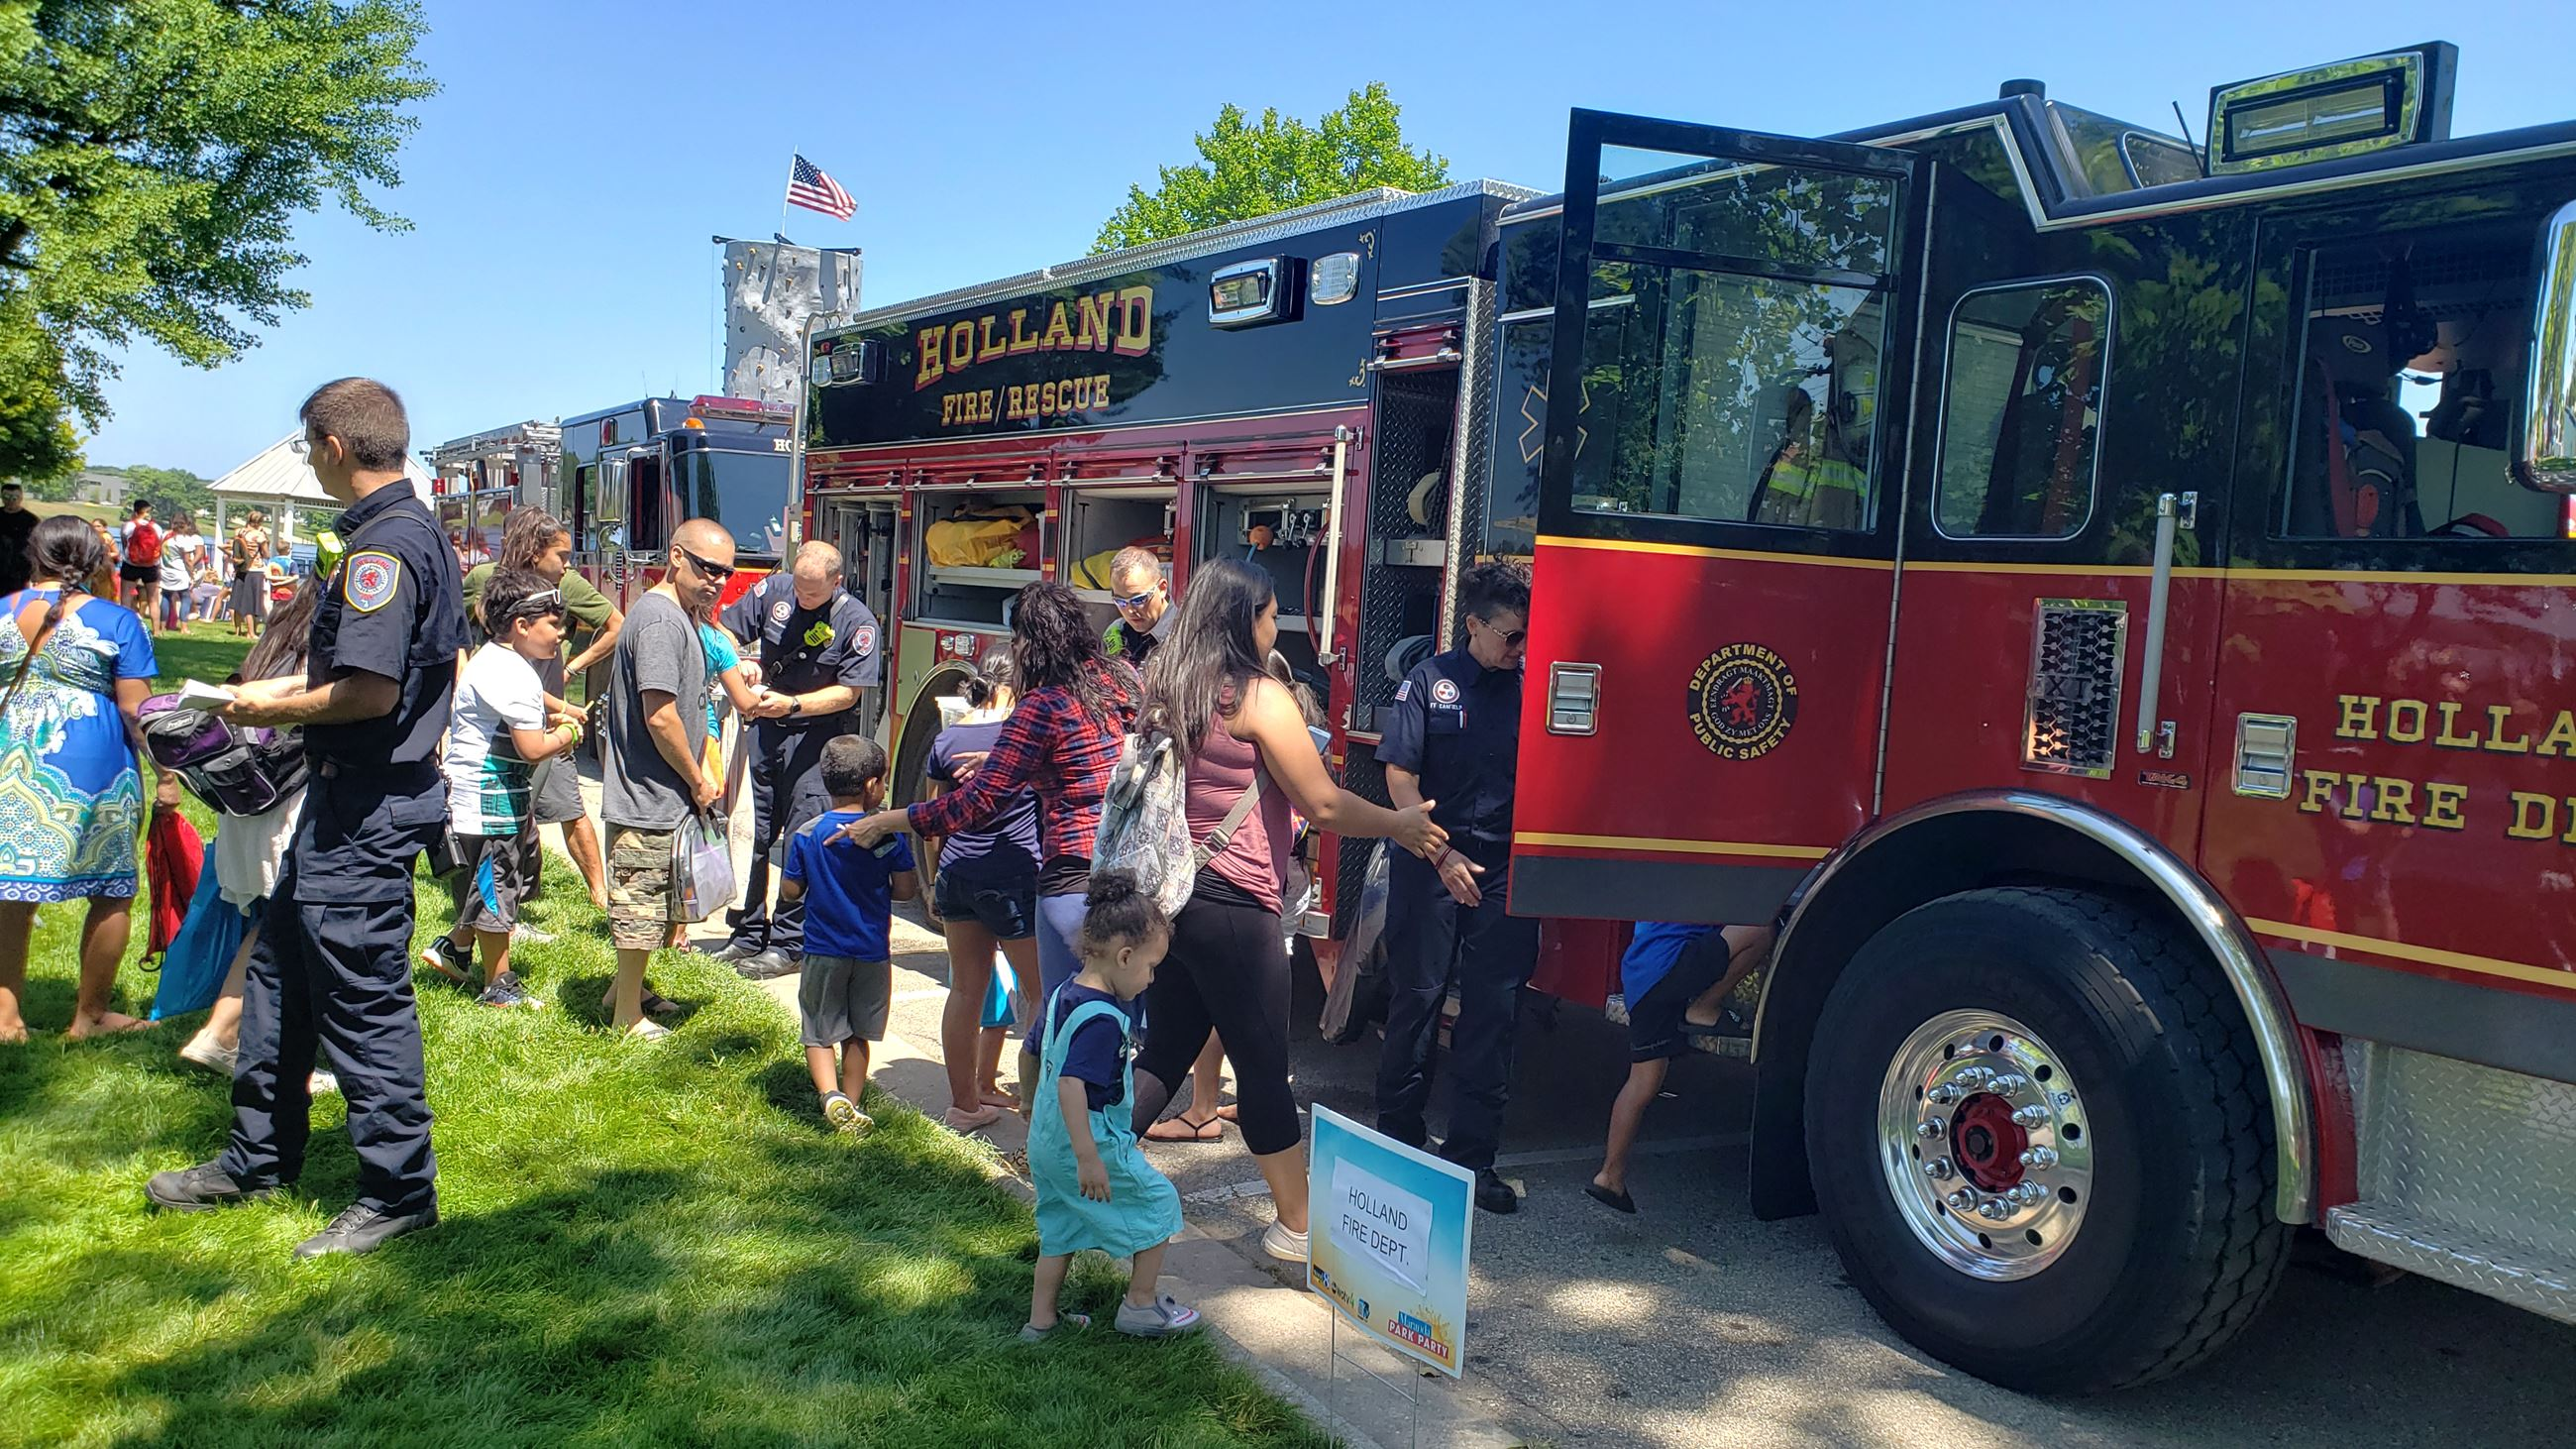 Fire trucks at a park with children and Firefighters around it